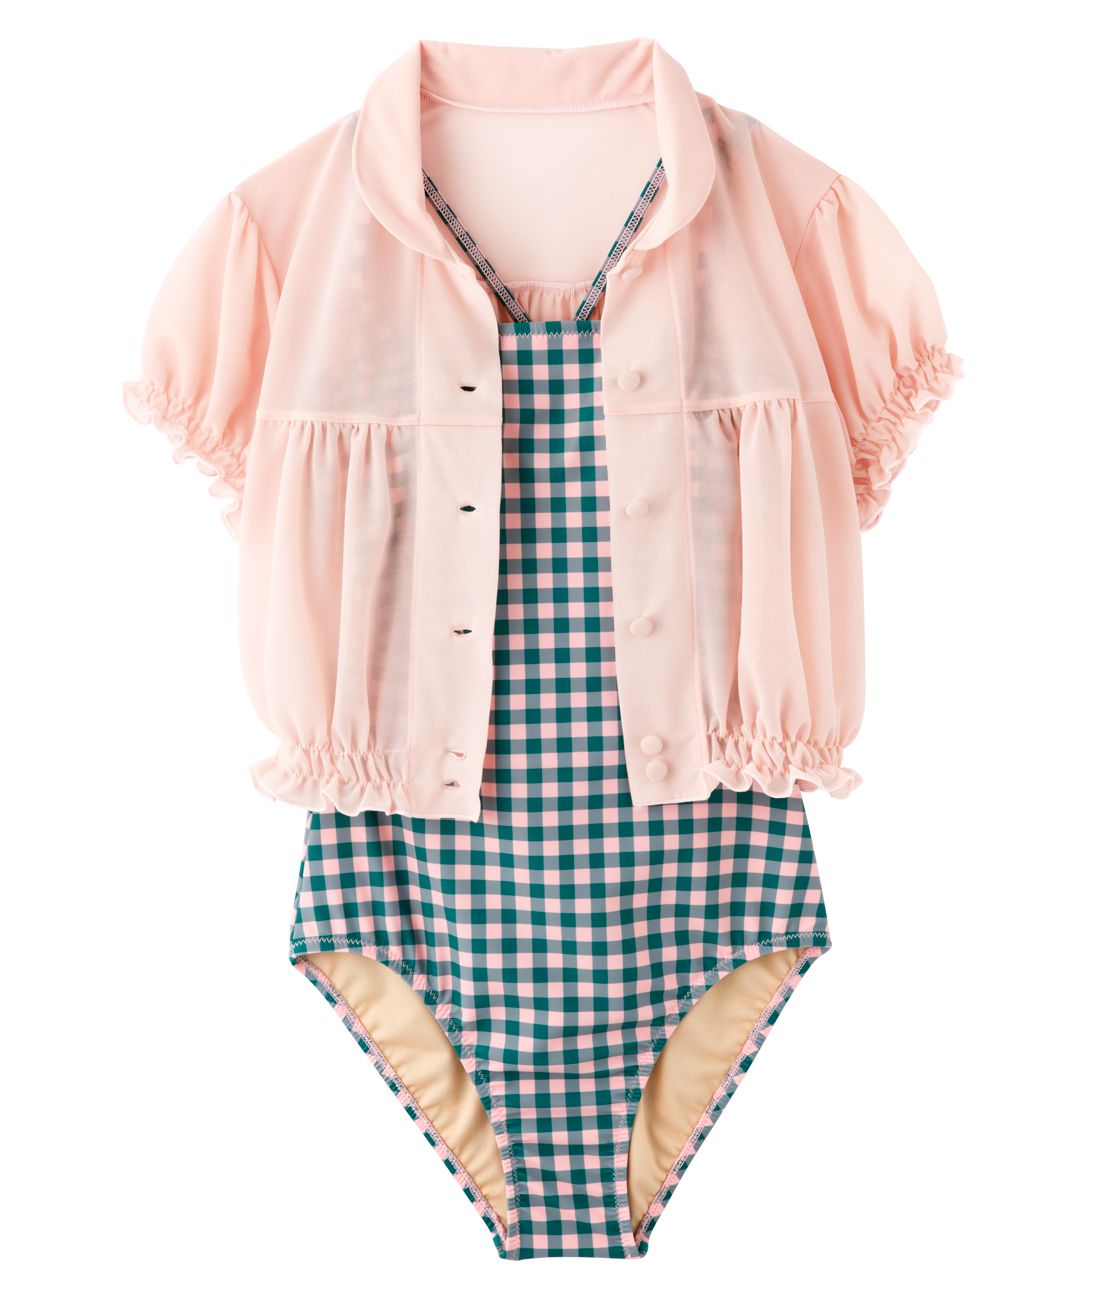 YM gingham Doll Swimwear Set